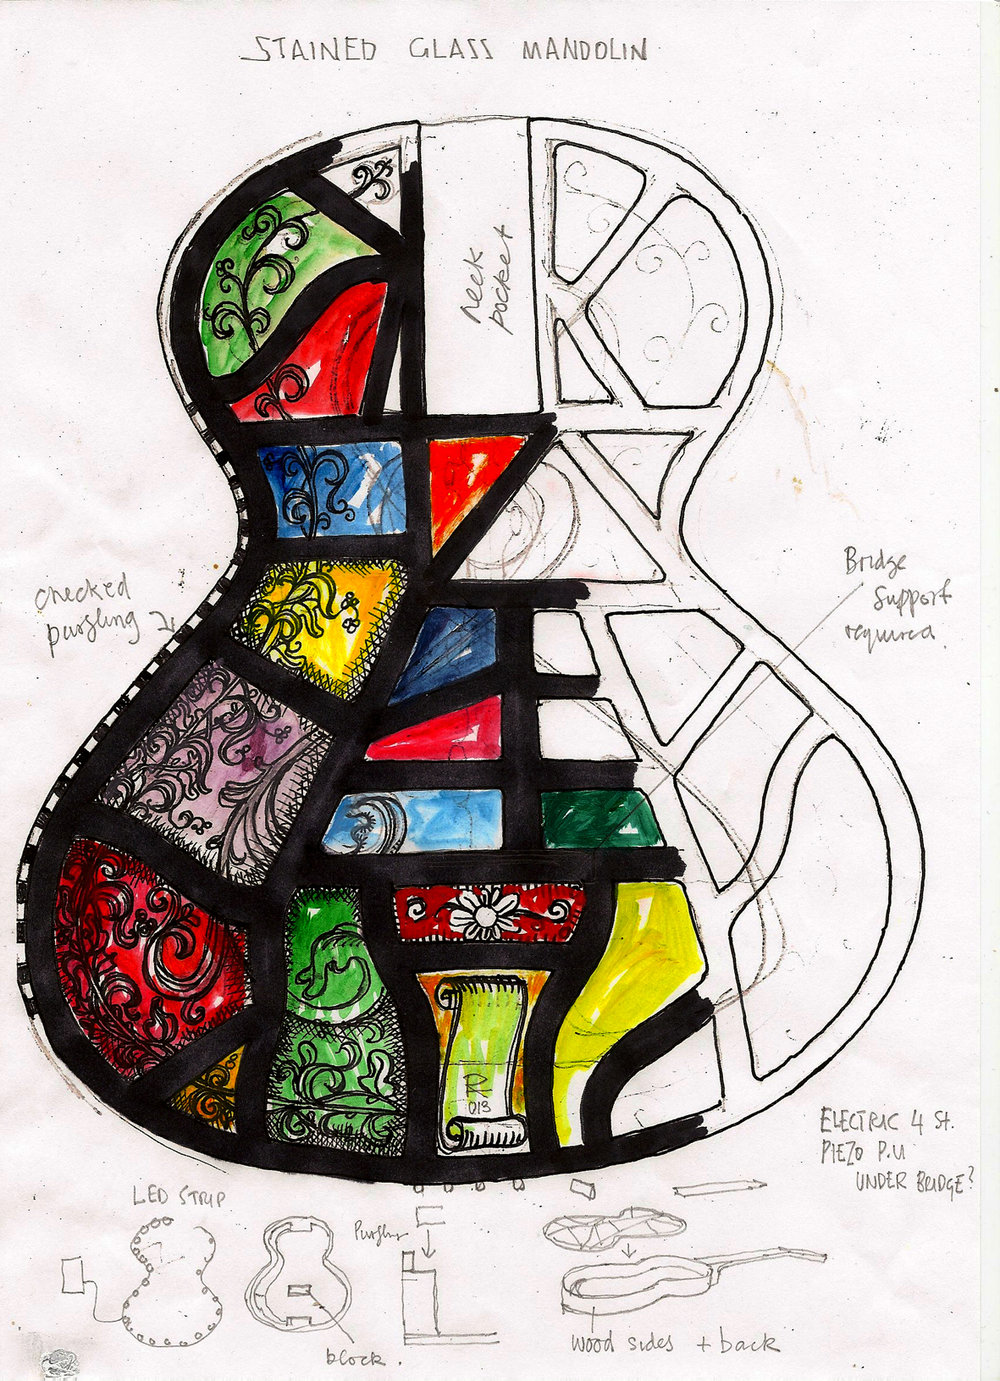 Working sketch for The Stained Glass Mandolin